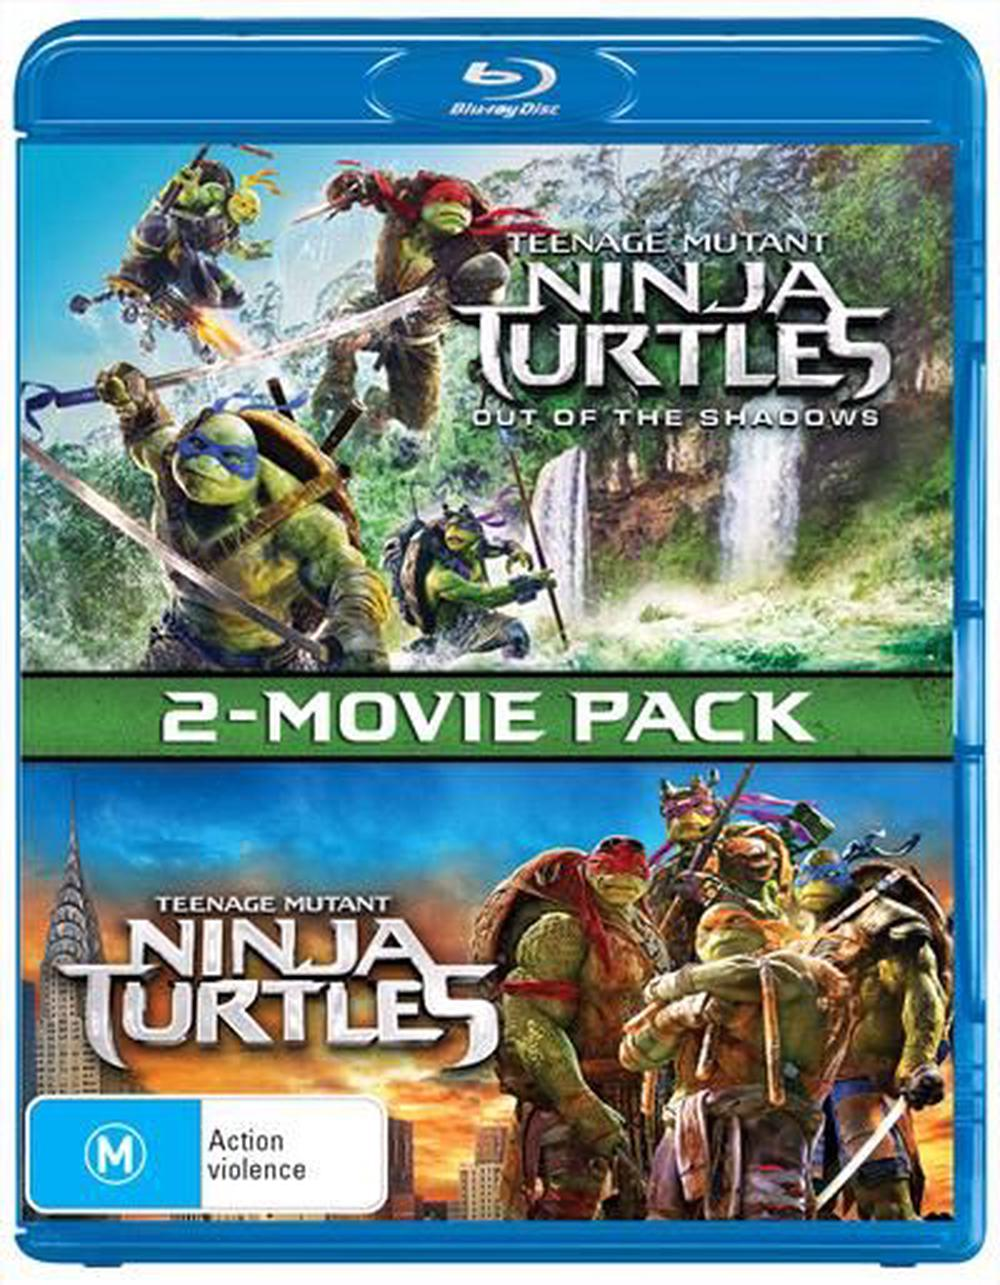 Teenage Mutant Ninja Turtles Teenage Mutant Ninja Turtles Out Of The Shadows Blu Ray Buy Online At The Nile